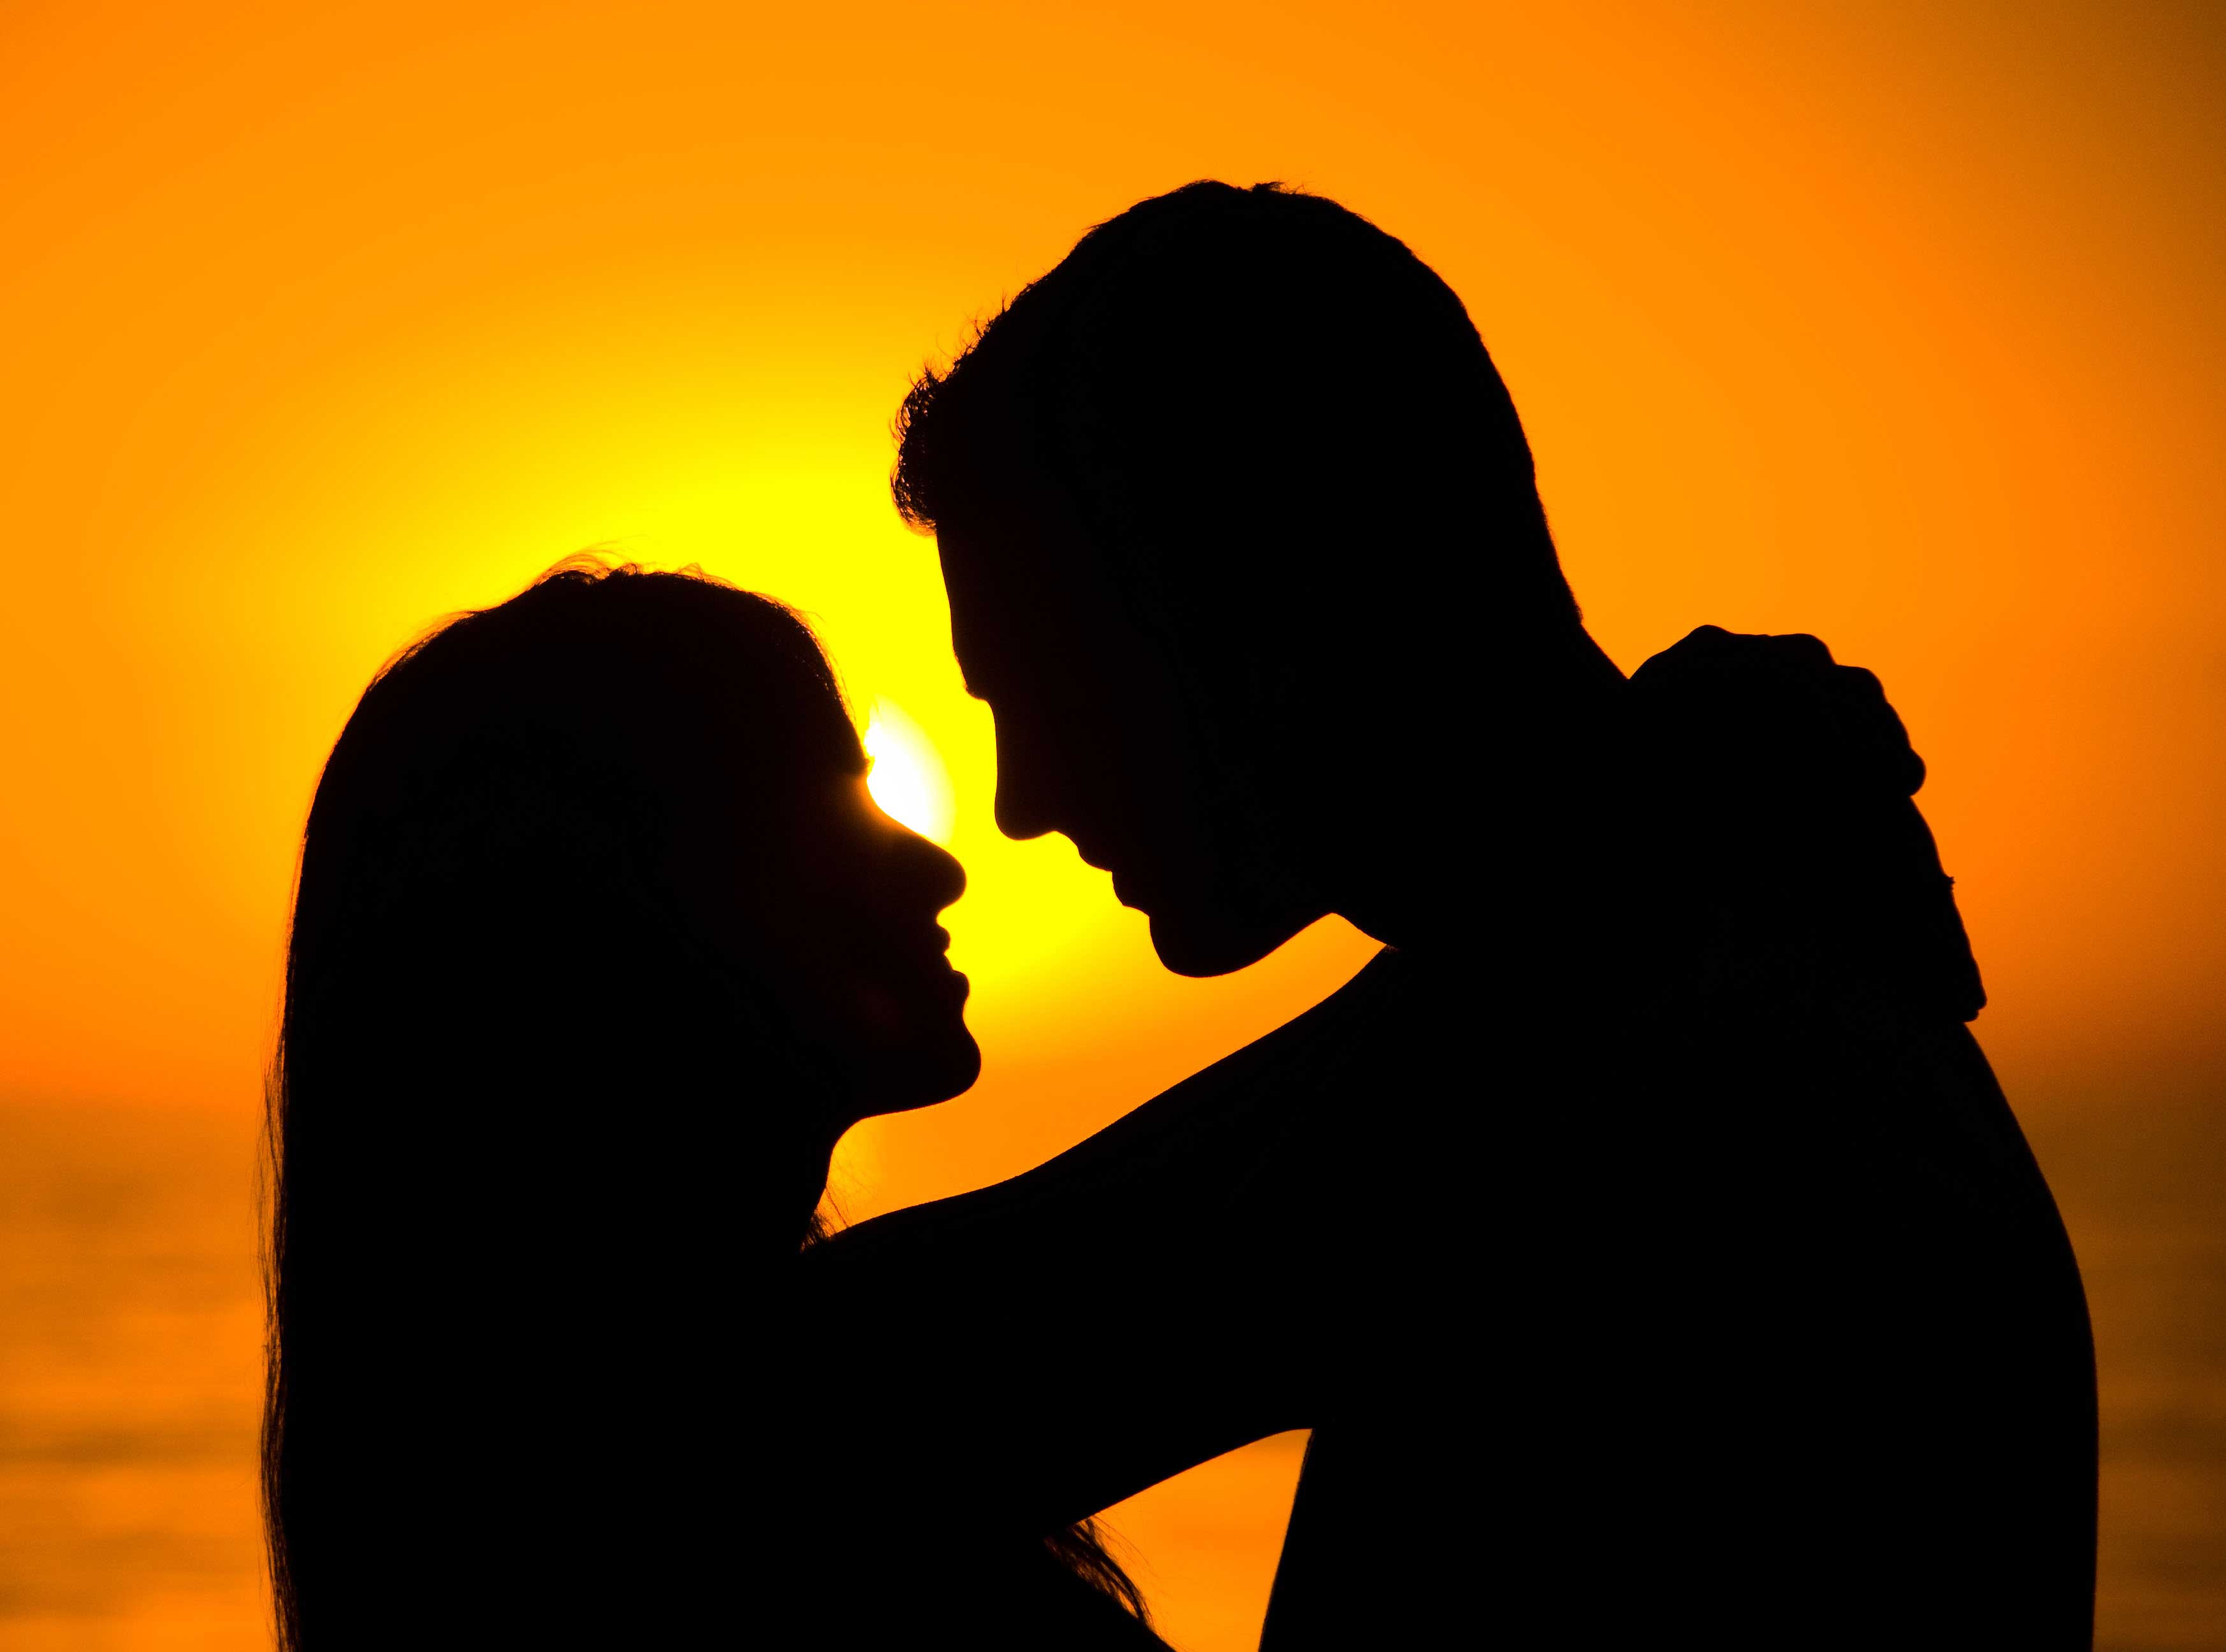 3492x2592 Pnq Love Silhouette Wallpapers, 39 Wallpapers Of Love Silhouette Hdq